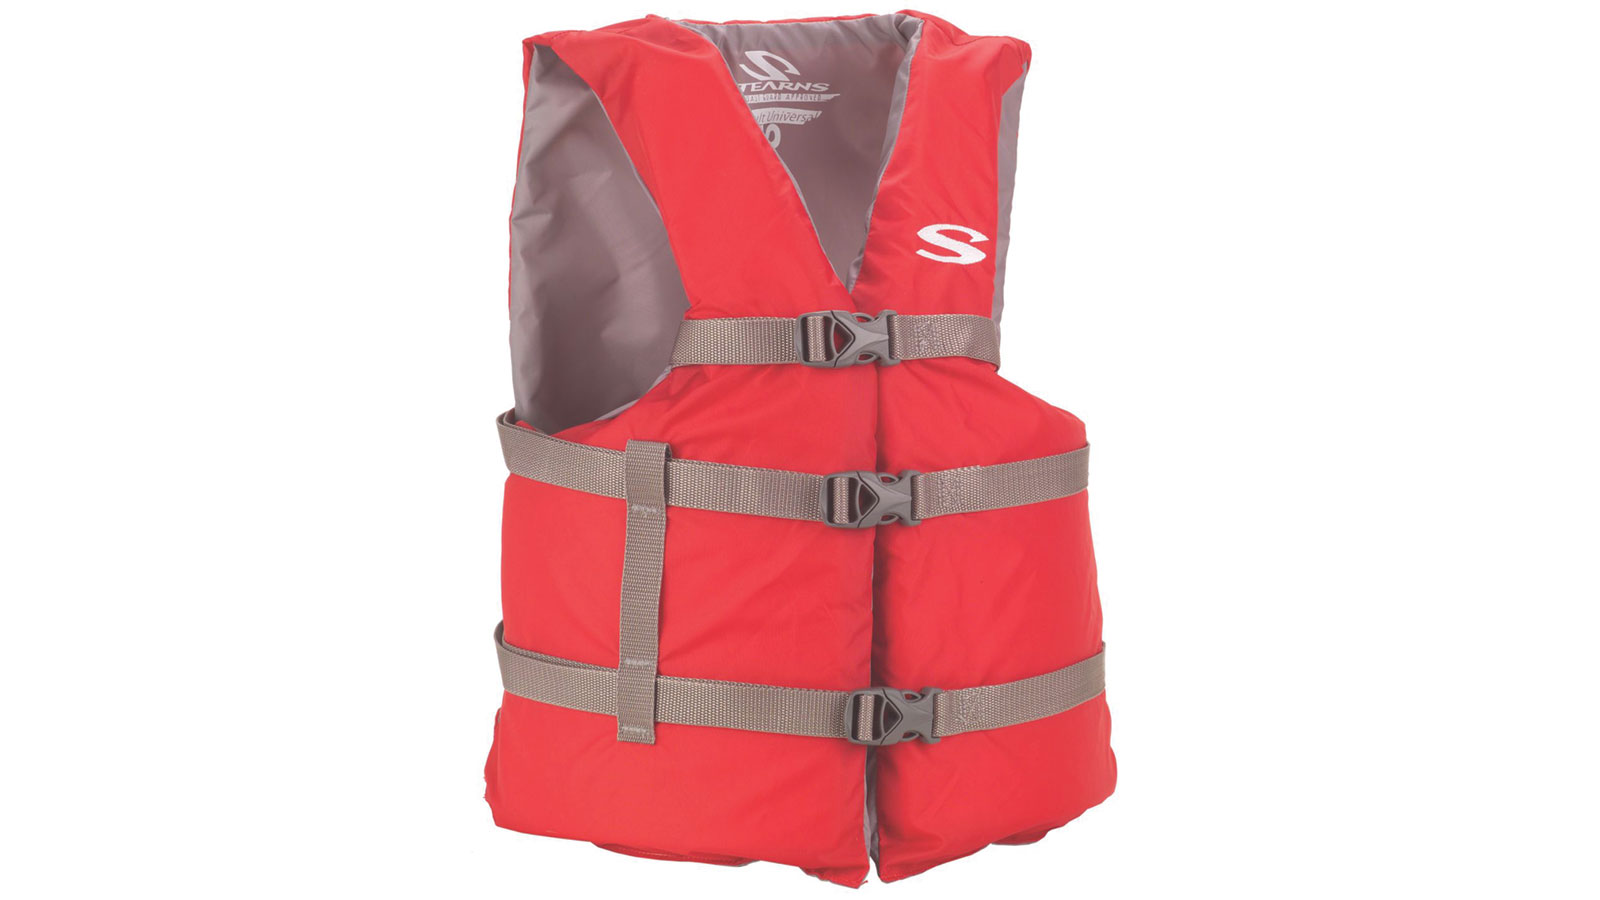 Stearns 3000004476 Adult General Purpose Vest Oversized Red